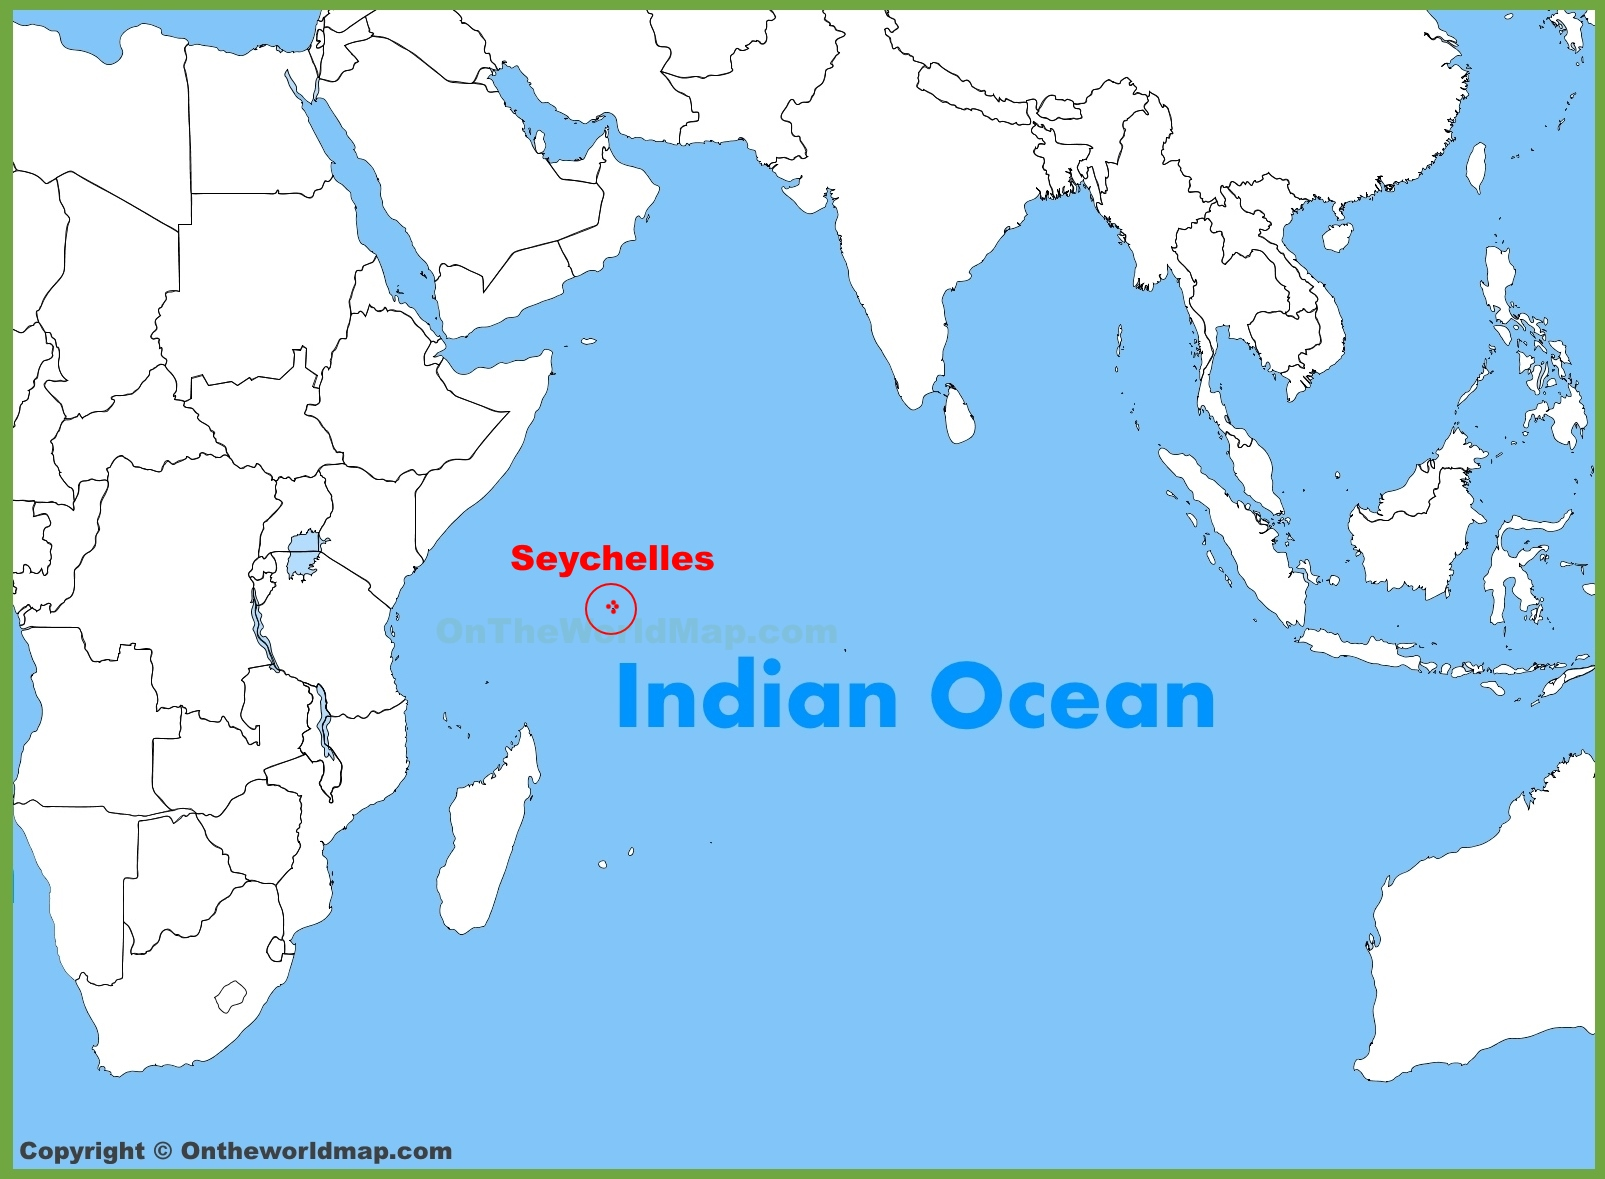 Image result for seychelles on indian ocean map